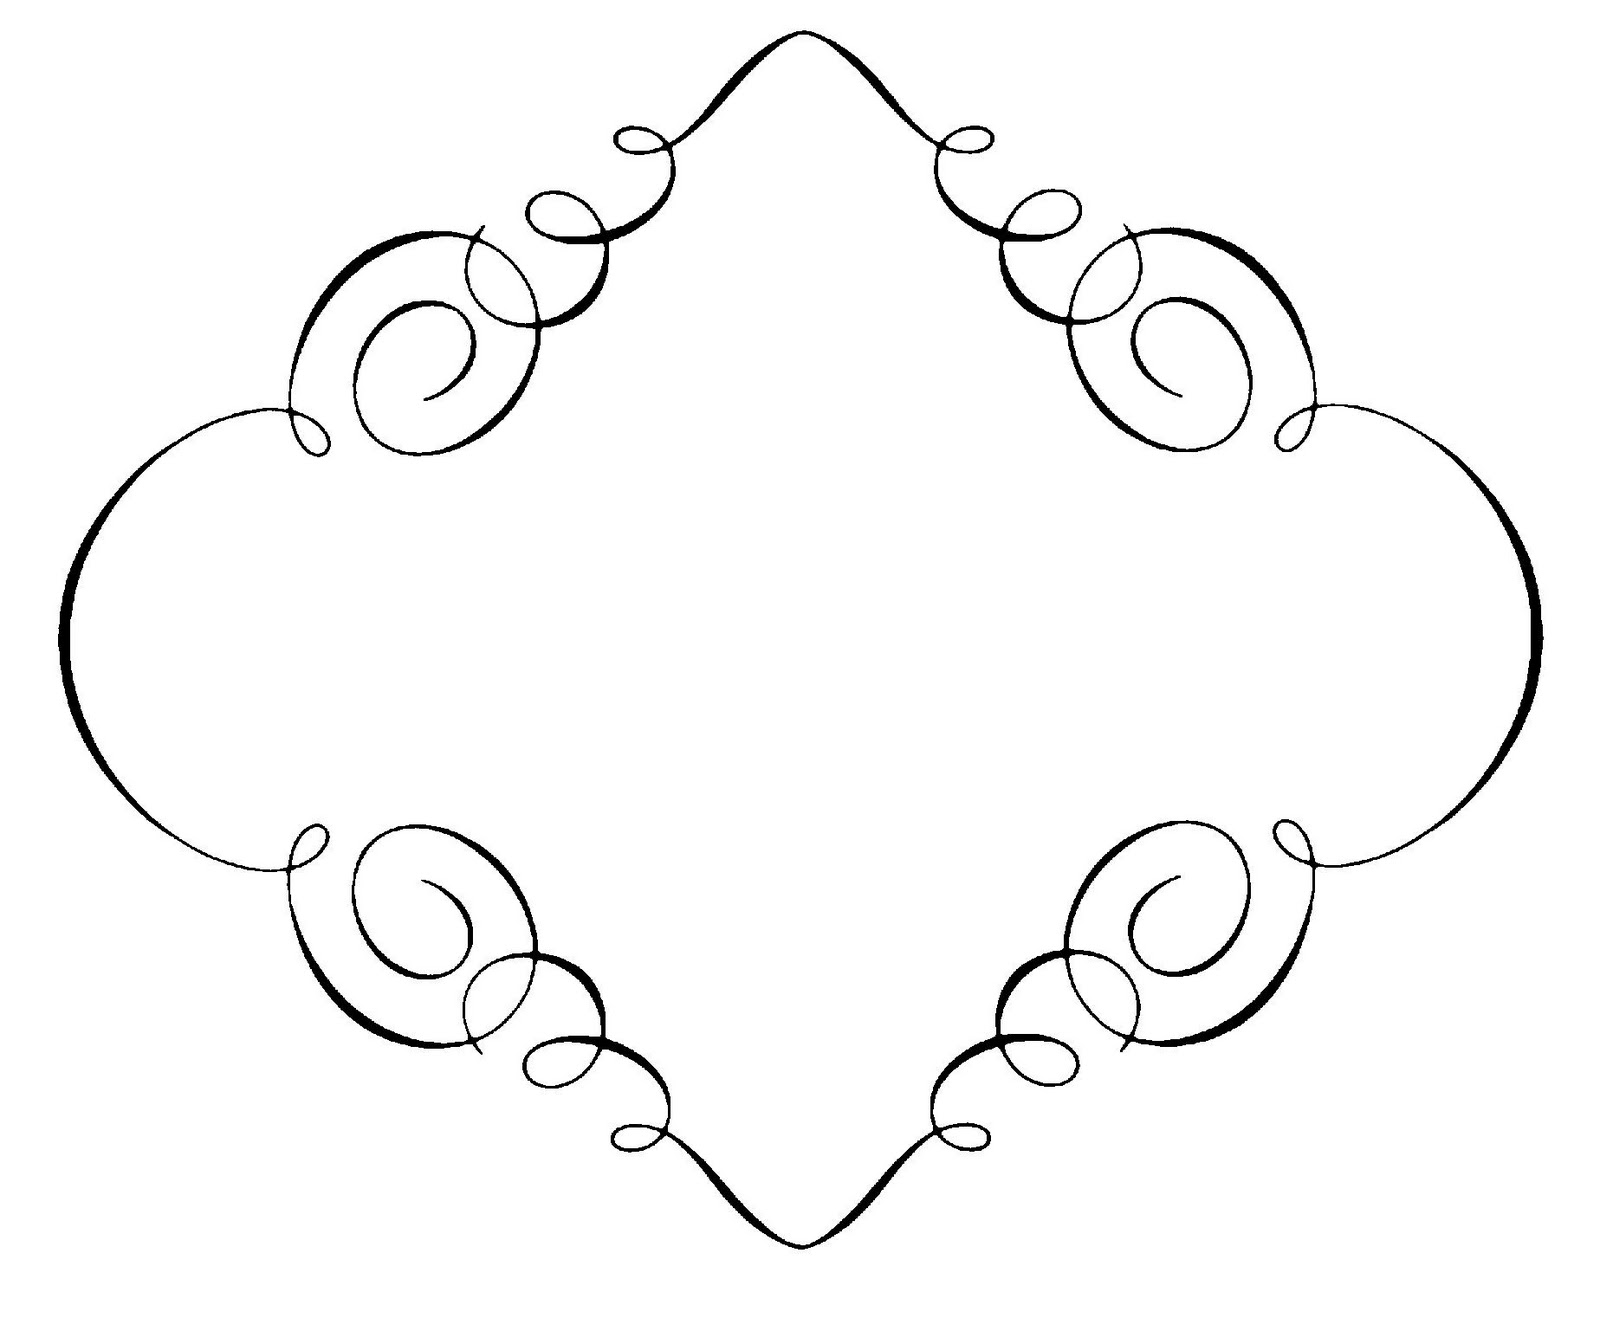 Free Free Elegant Borders Download Free Clip Art Free Clip Art On Clipart Library